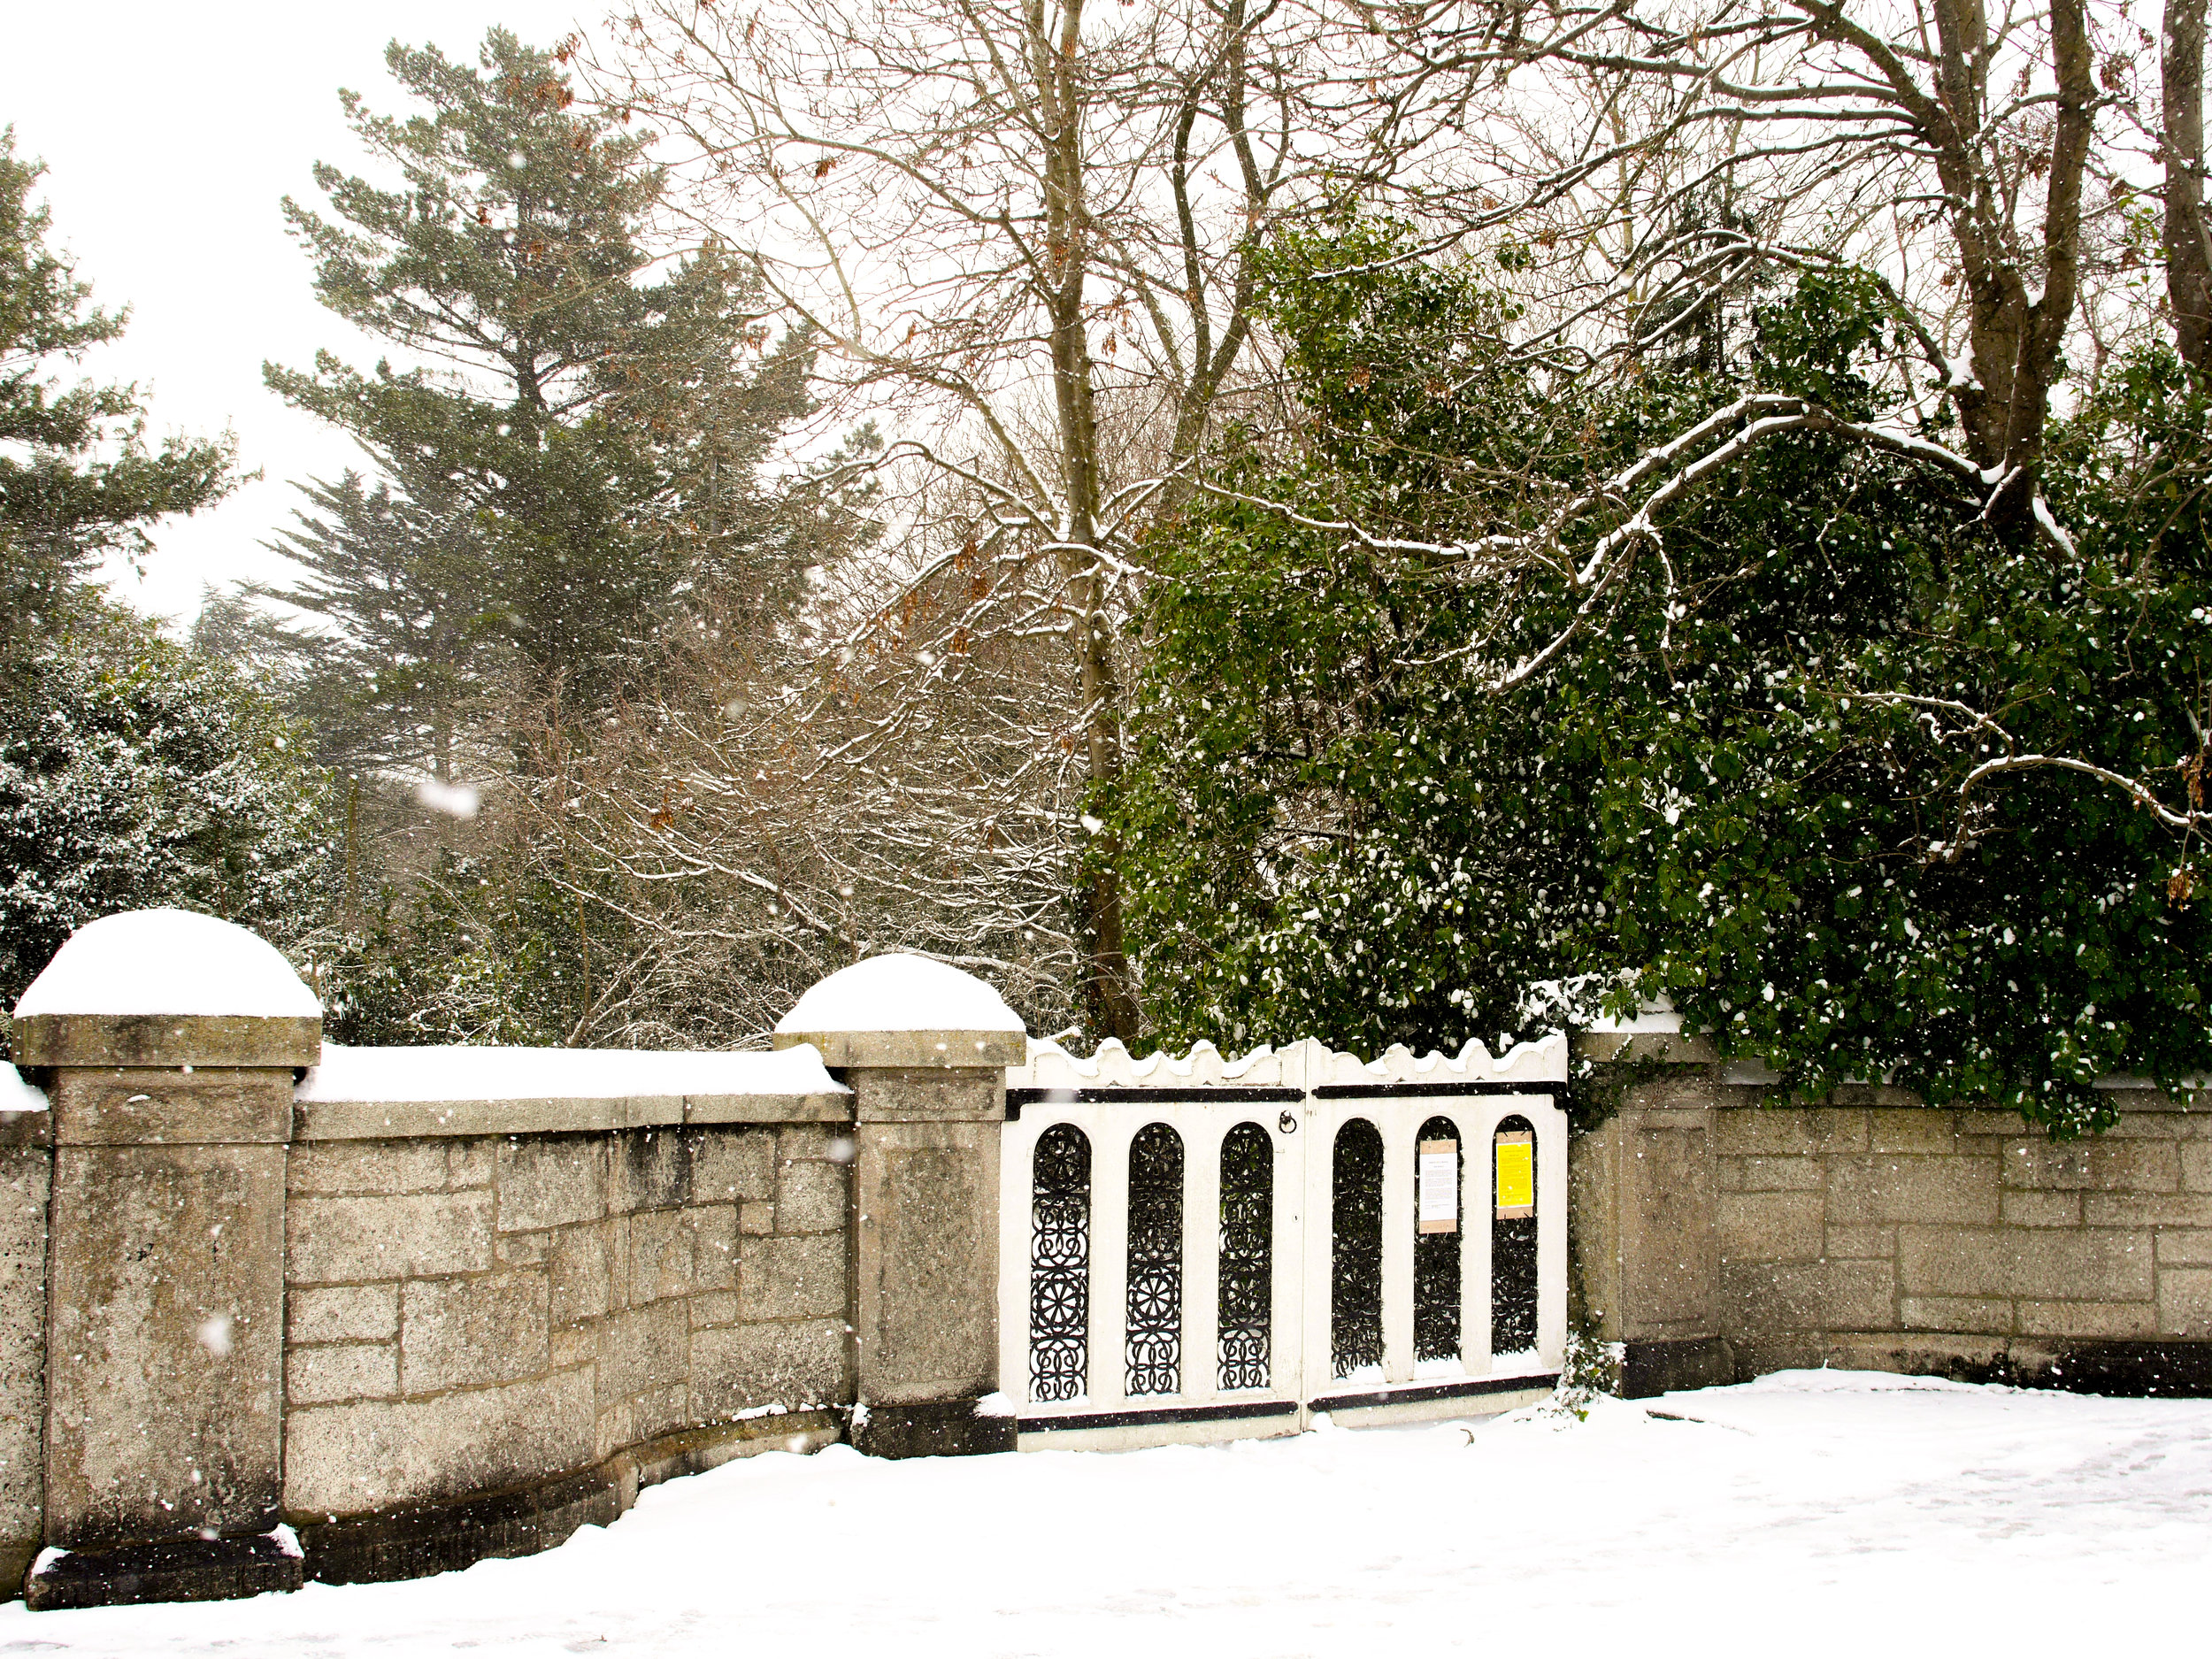 snow covered gate in Dublin, Ireland